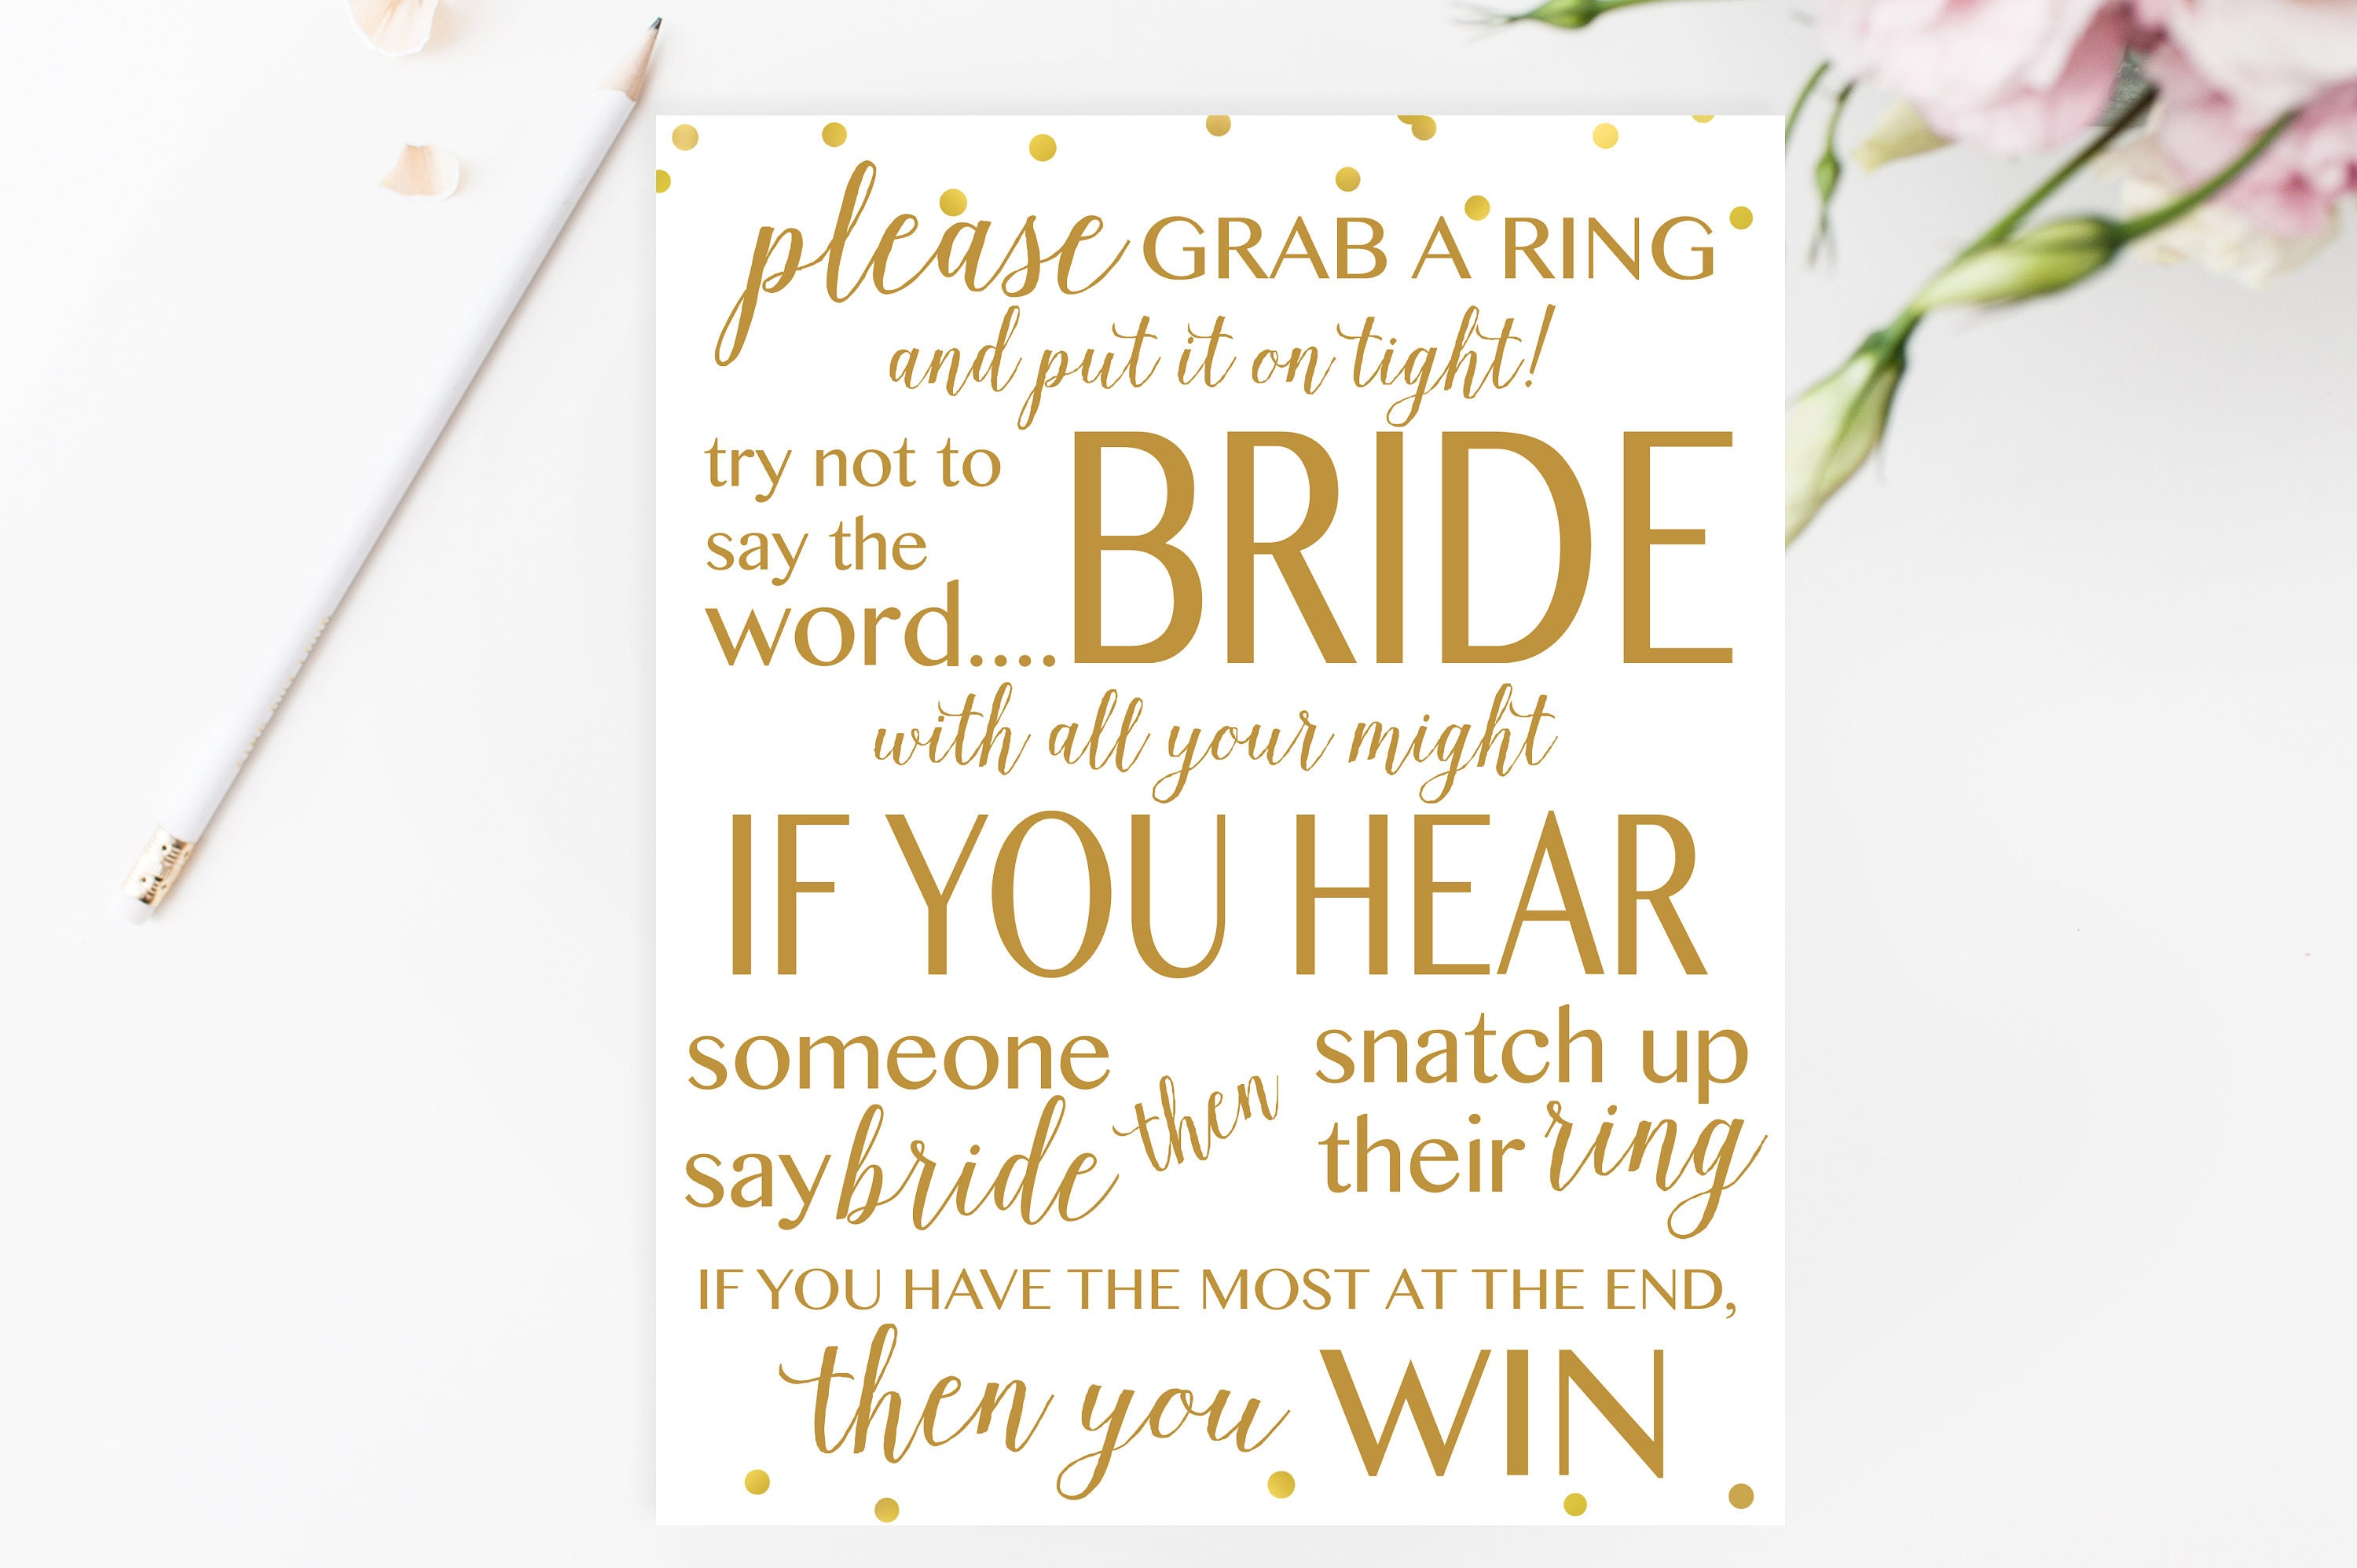 photo regarding Bridal Shower Games Printable referred to as Gold Dont Say BRIDE Match Printable, Bridal Shower Online games Printable, Bridal Shower Recreation, Bridal Shower Printable Video games, Gold Video games BRS1